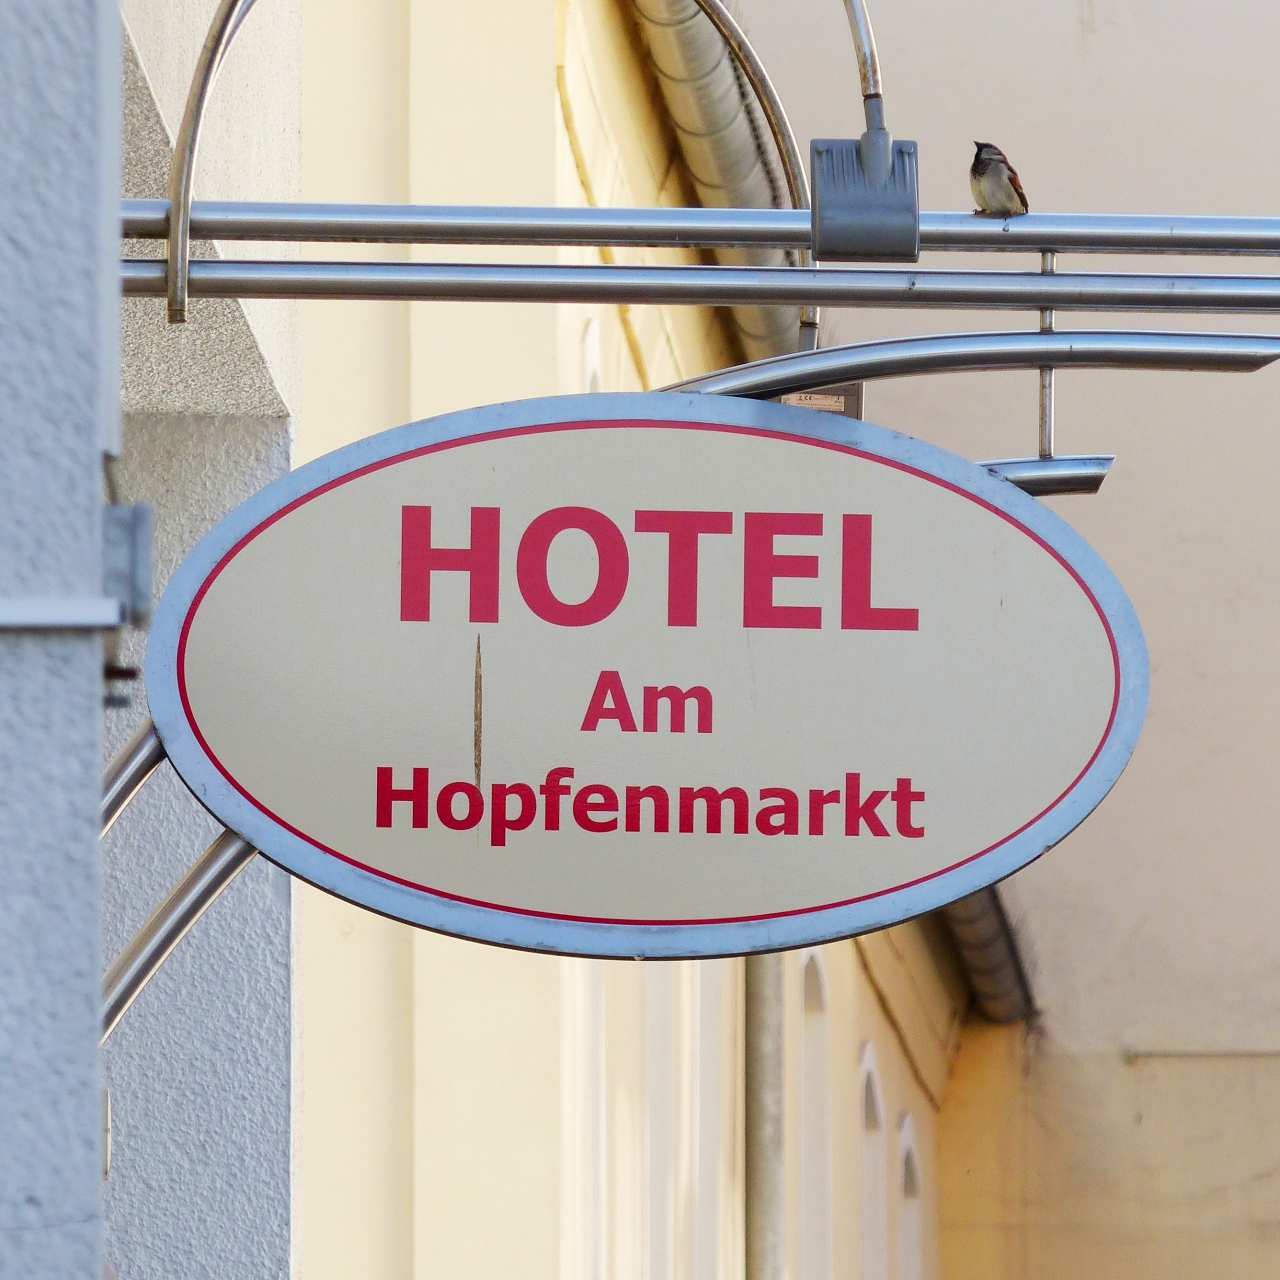 Am Hopfenmarkt Rostock Hotel Am Hopfenmarkt Rostock At Hrs With Free Services